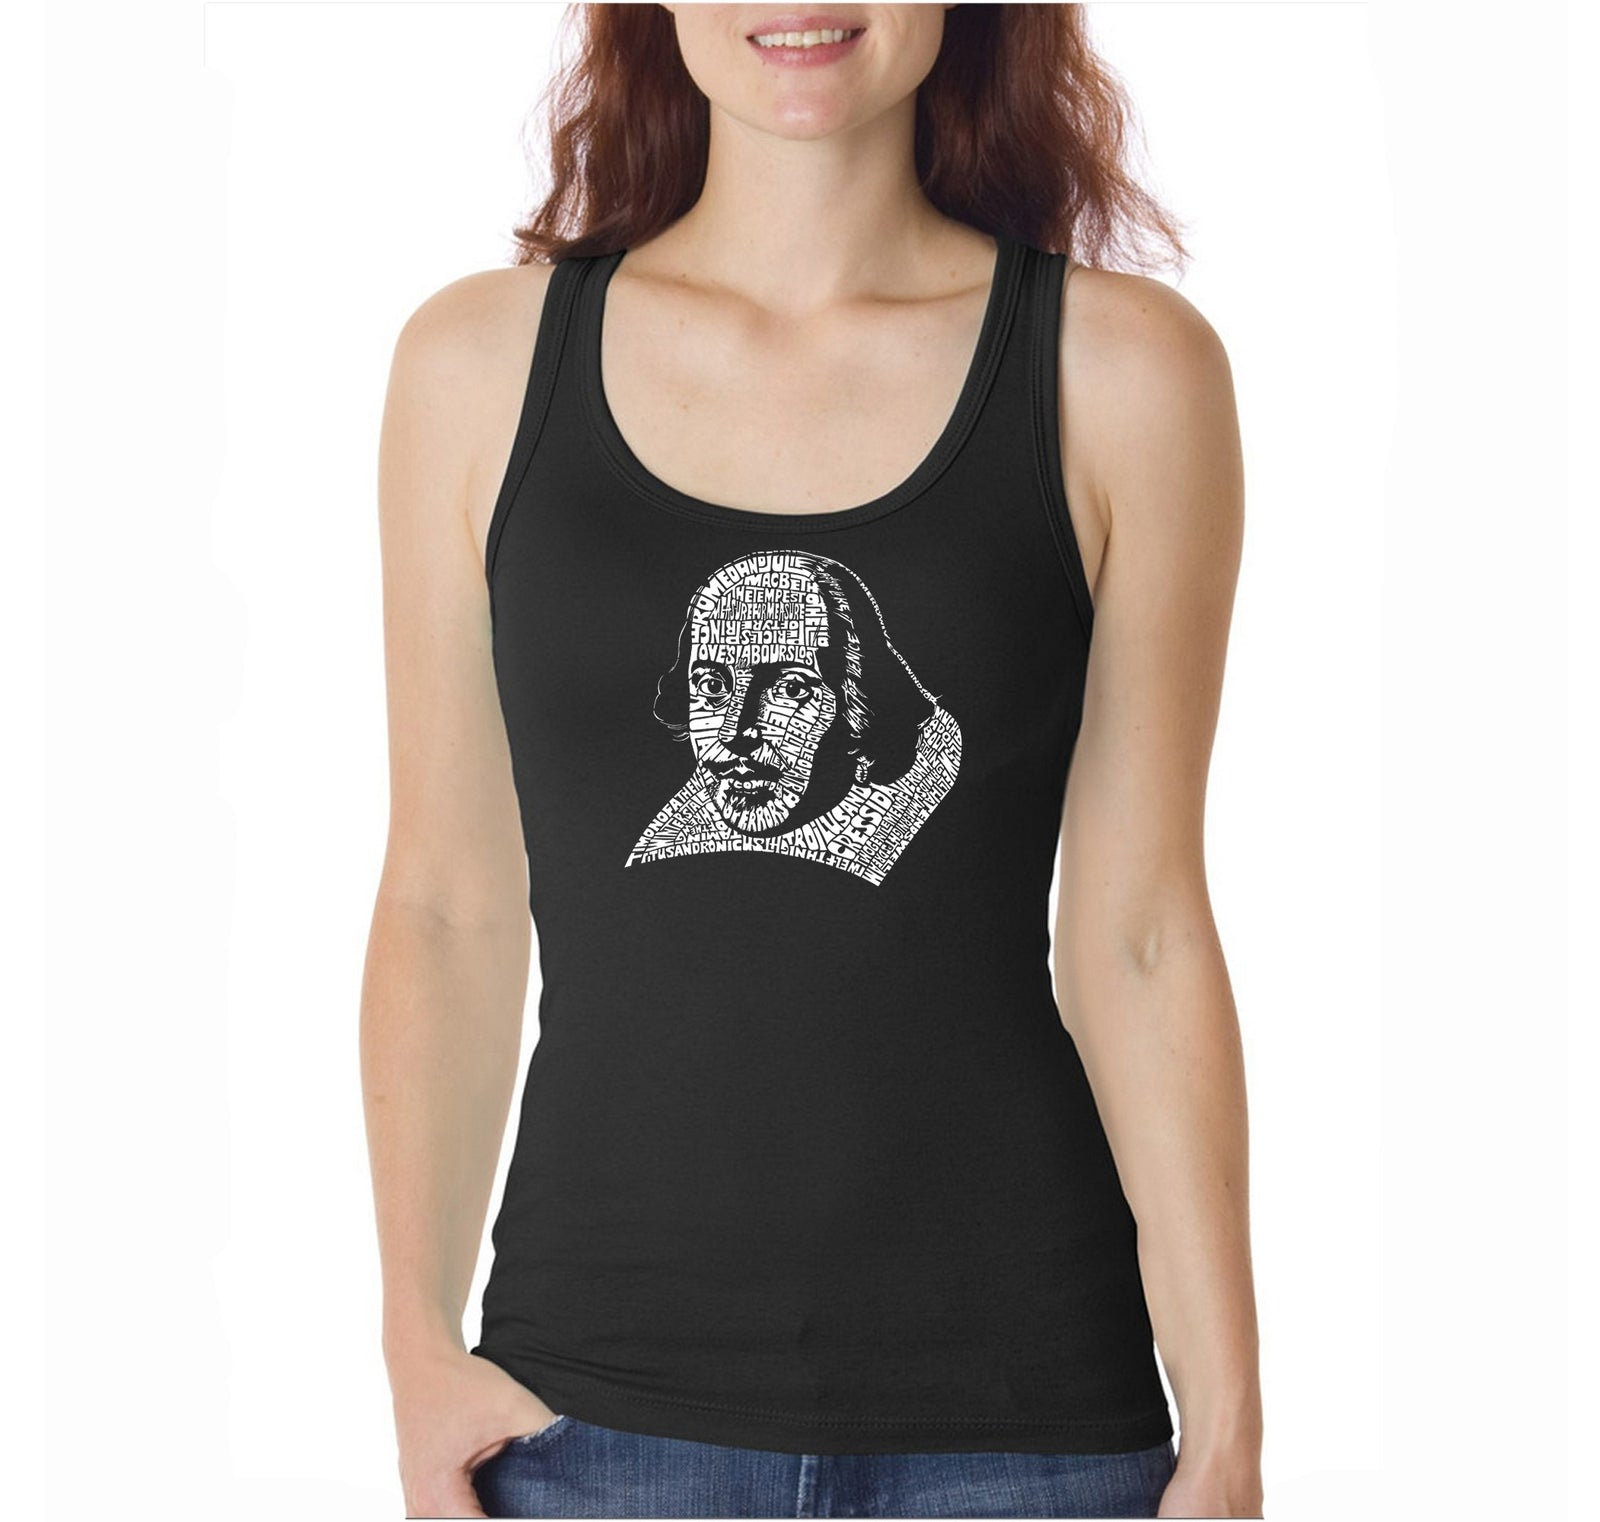 Women's Tank Top - THE TITLES OF ALL OF WILLIAM SHAKESPEARE'S COMEDIES & TRAGEDIES